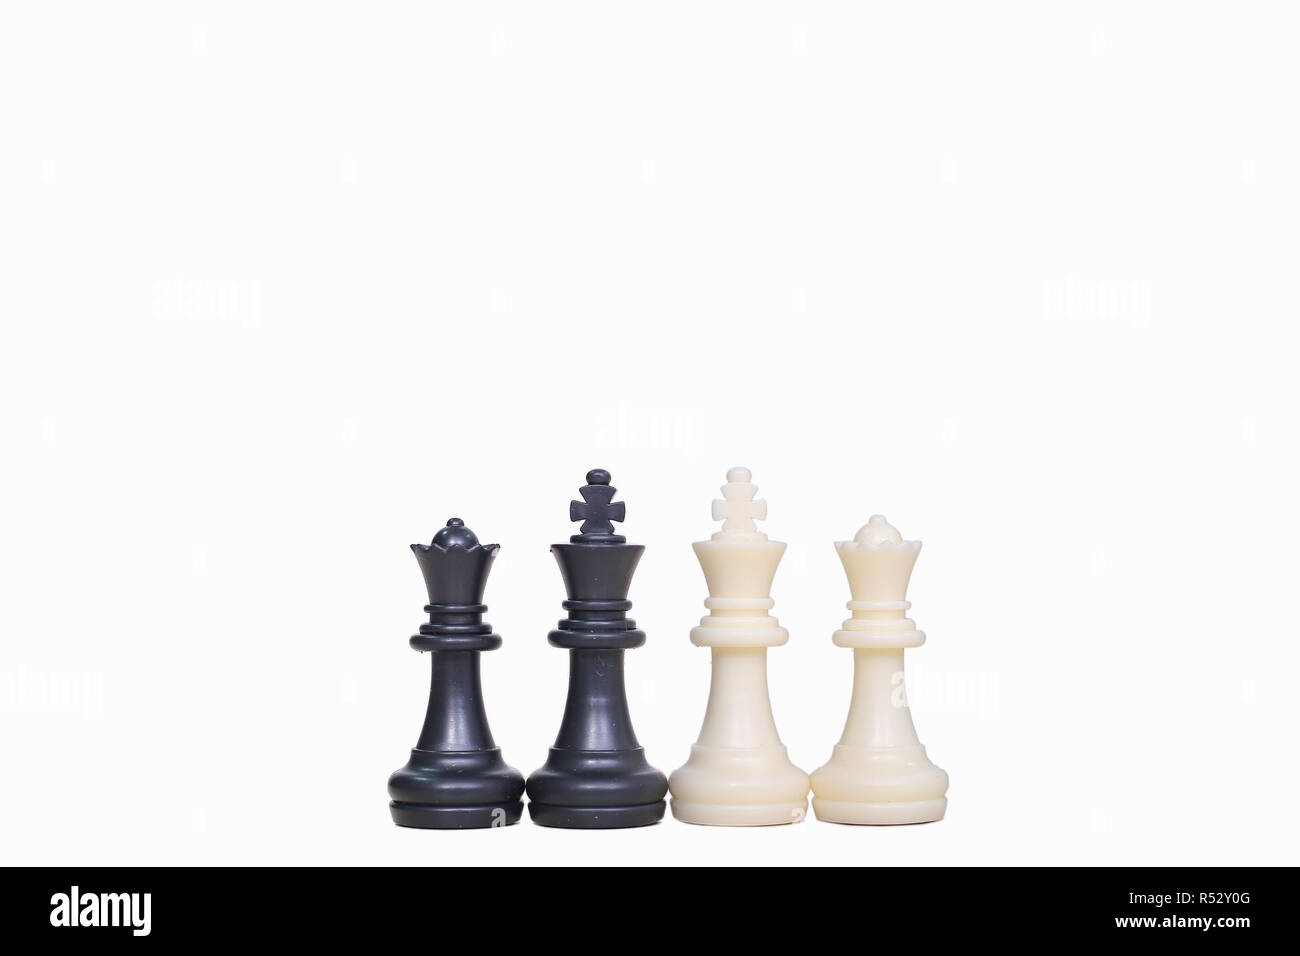 Picture of chess pawns on the white background. - Stock Image